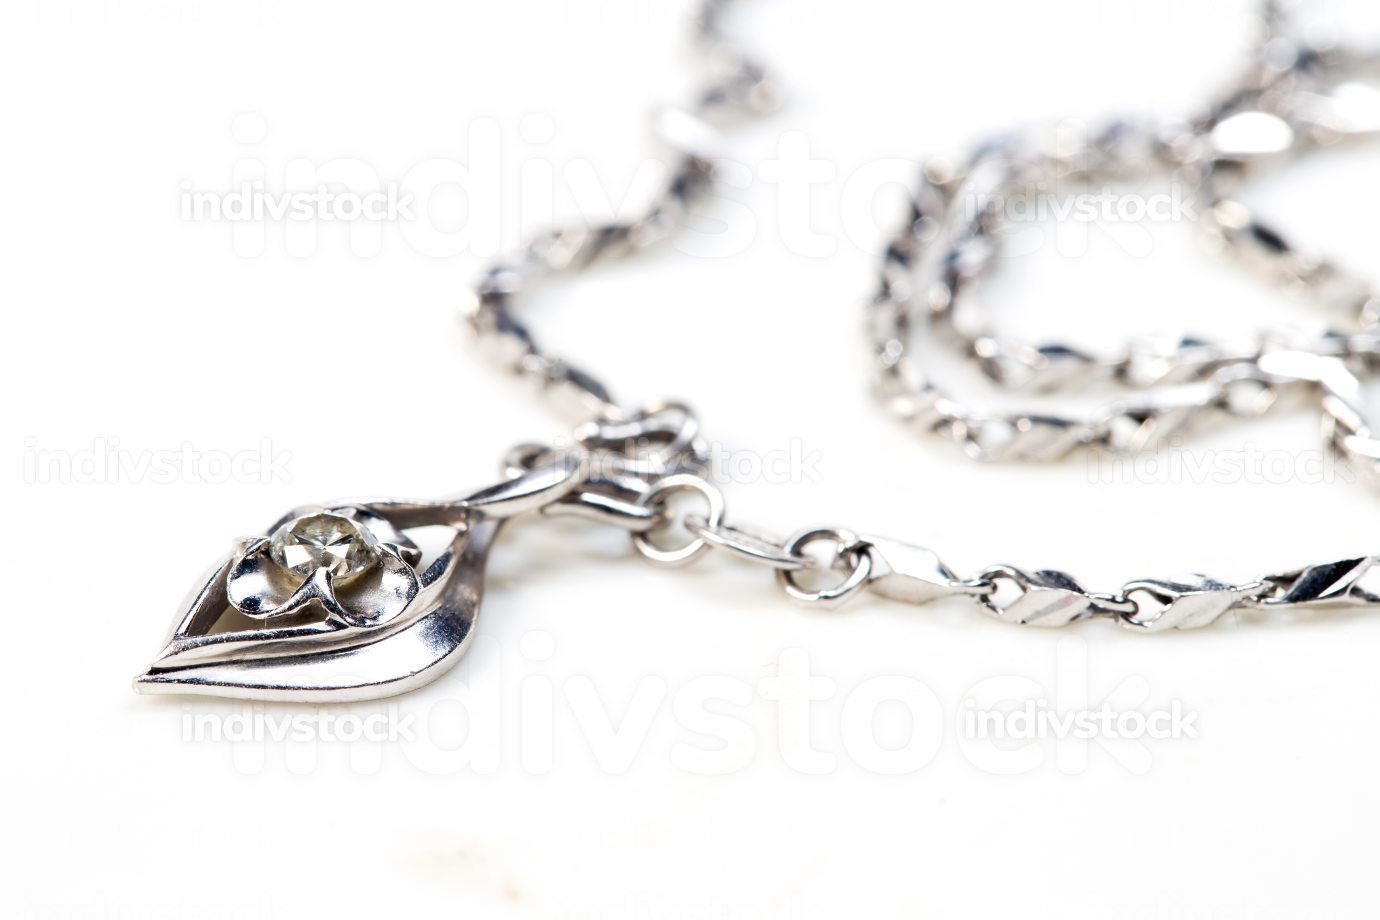 iamond heart pendant with necklace on white background.